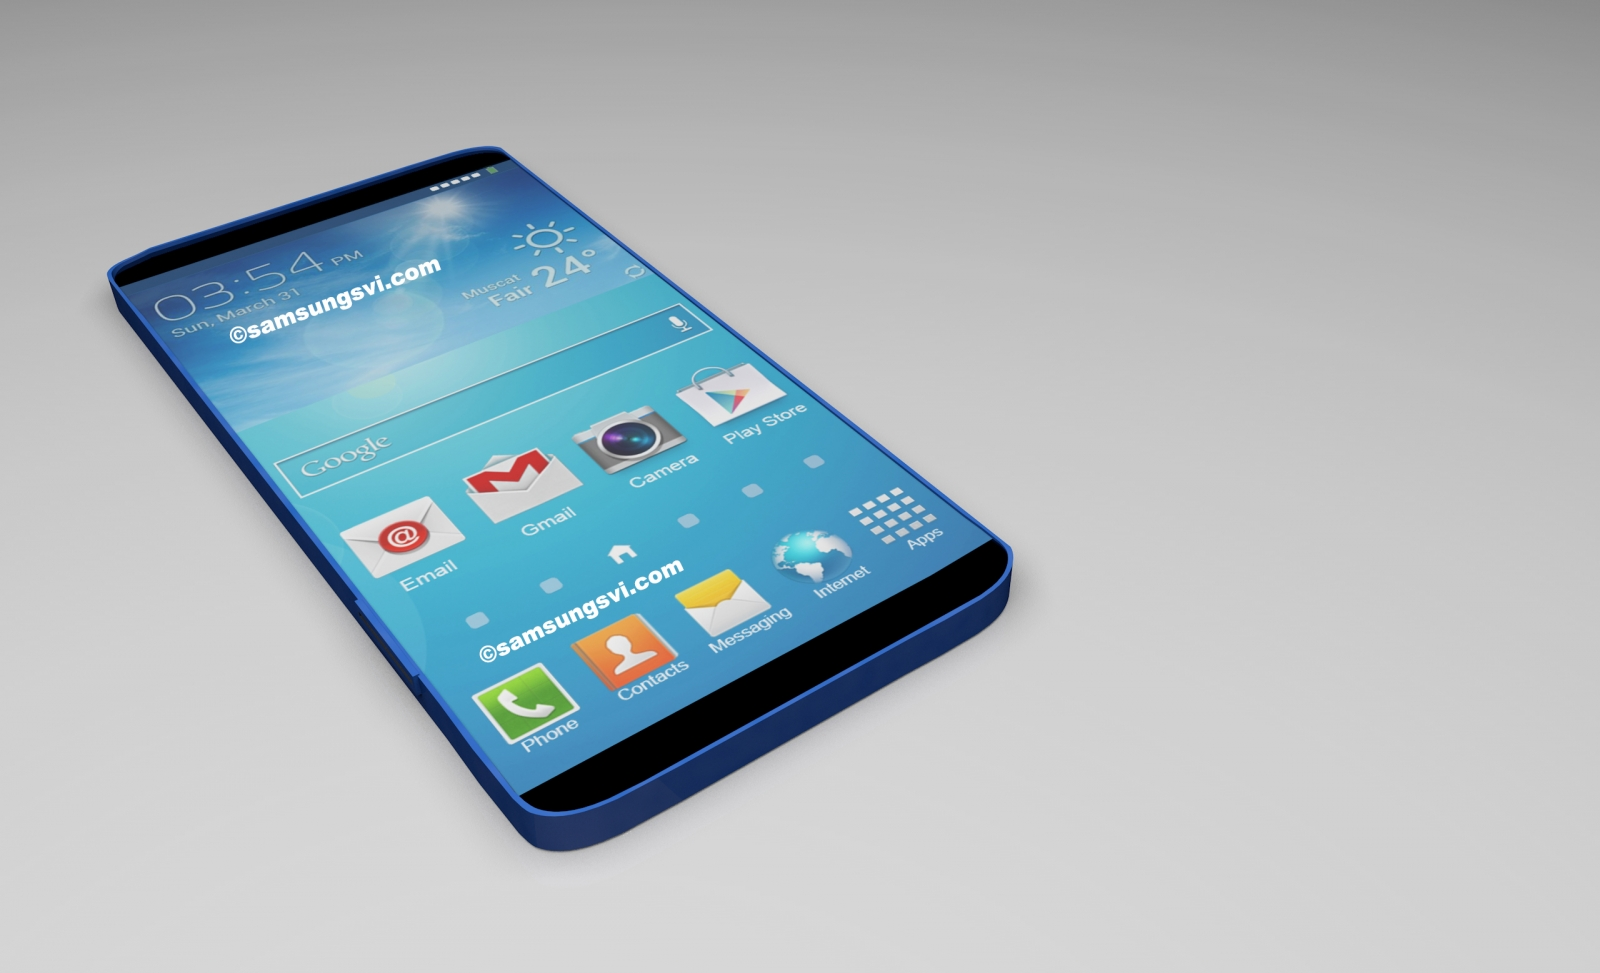 Galaxy S6 Release Date, Specs, Camera, Screen: What We